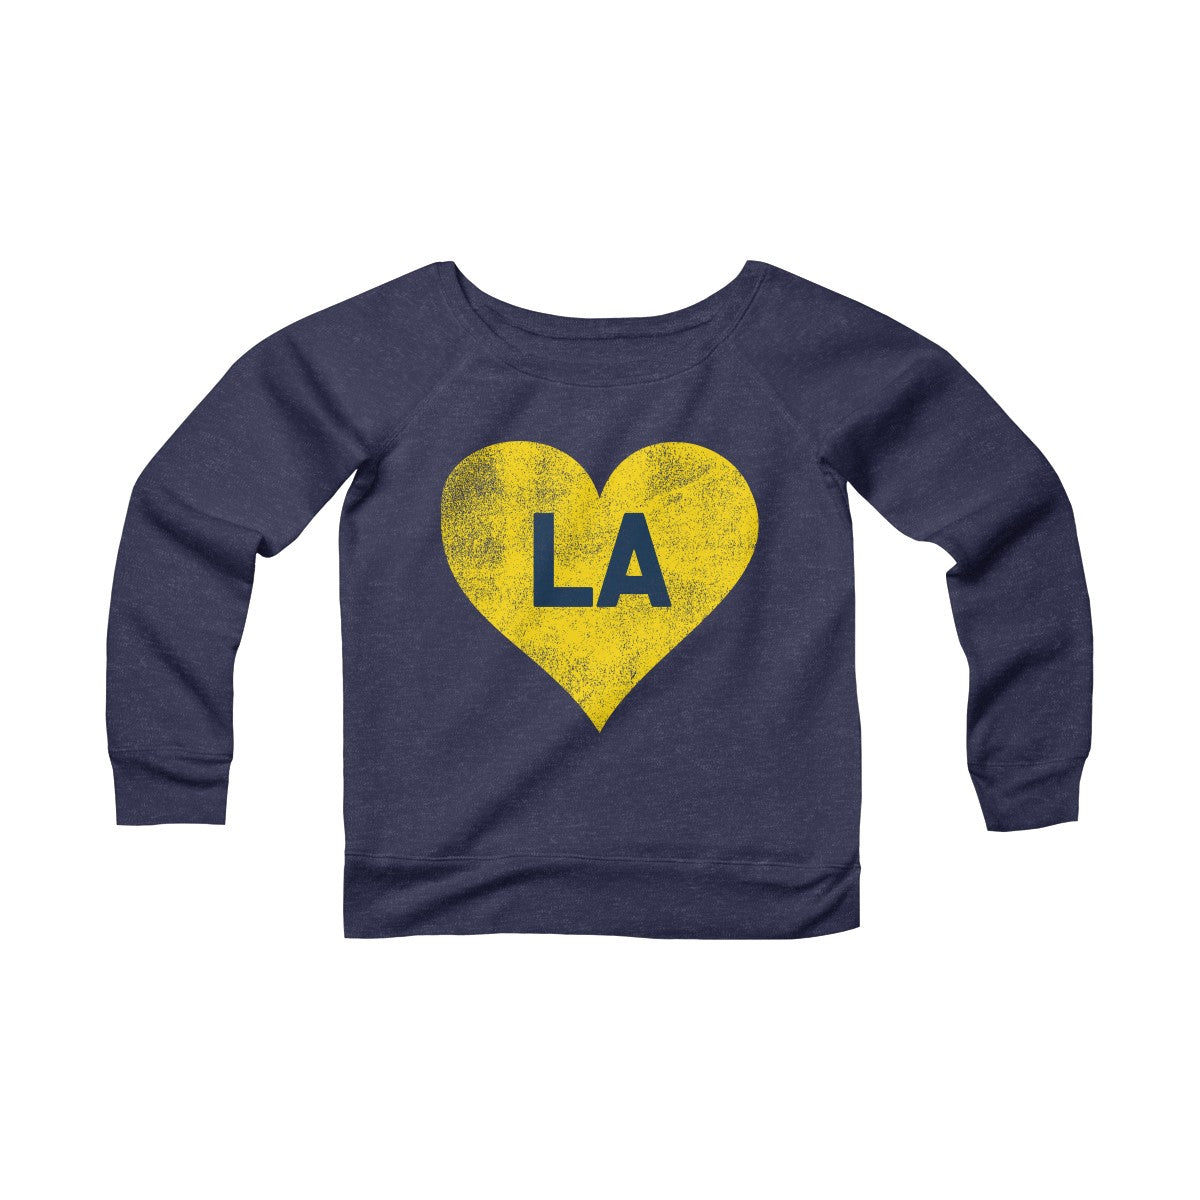 LA Love Women's Sponge Fleece Wide Neck Sweatshirt